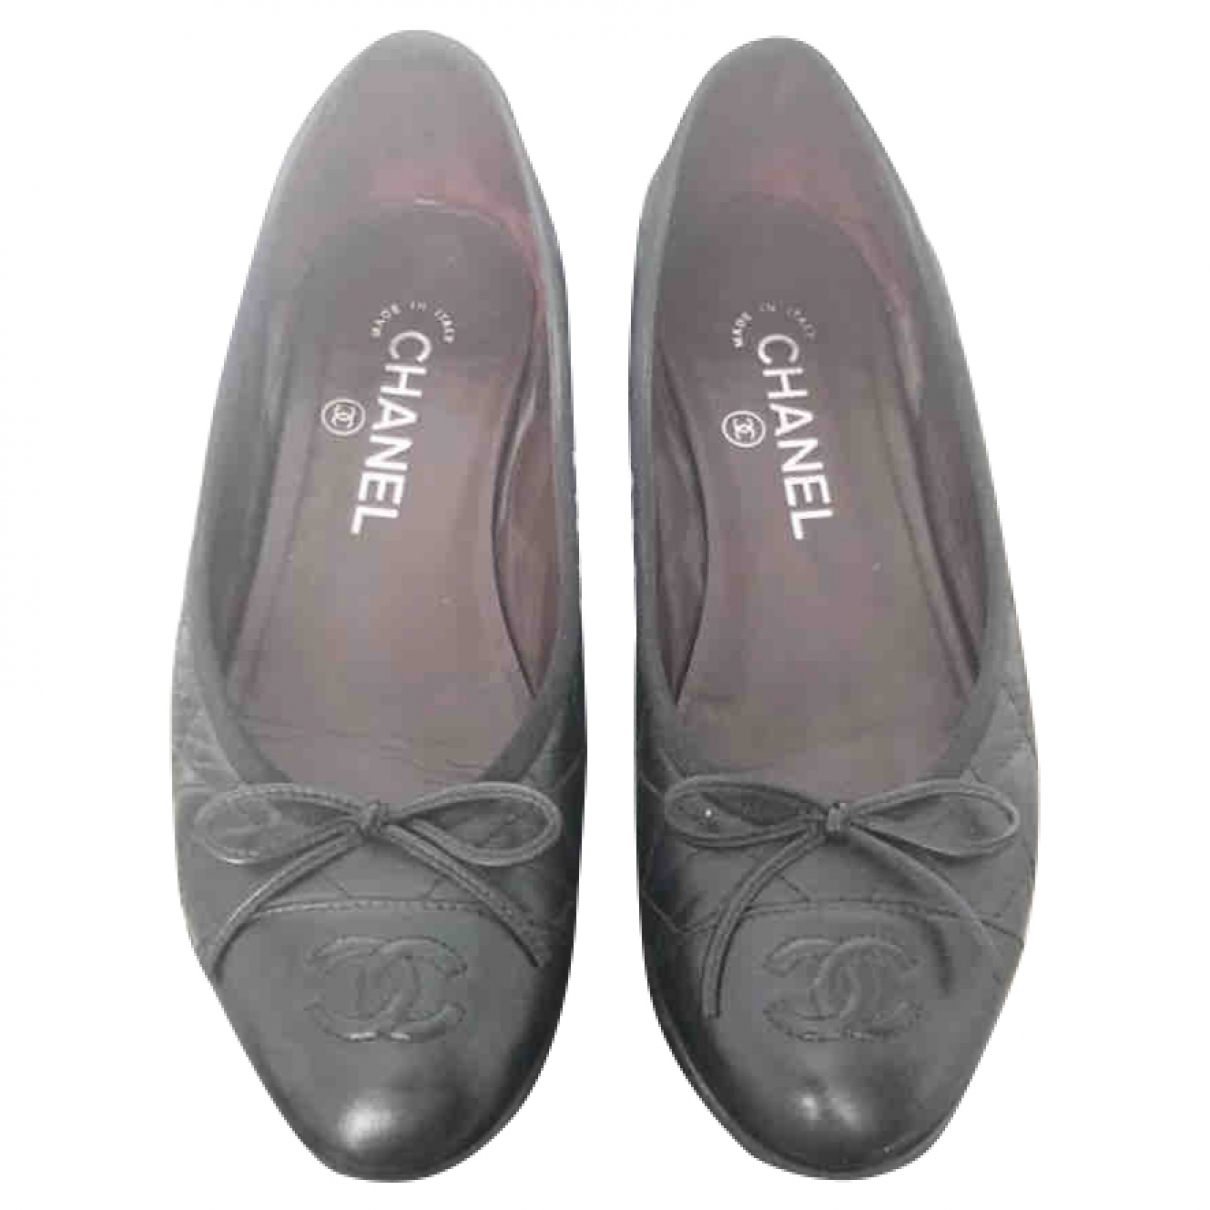 Chanel \N Ballerinas in  Schwarz Leder